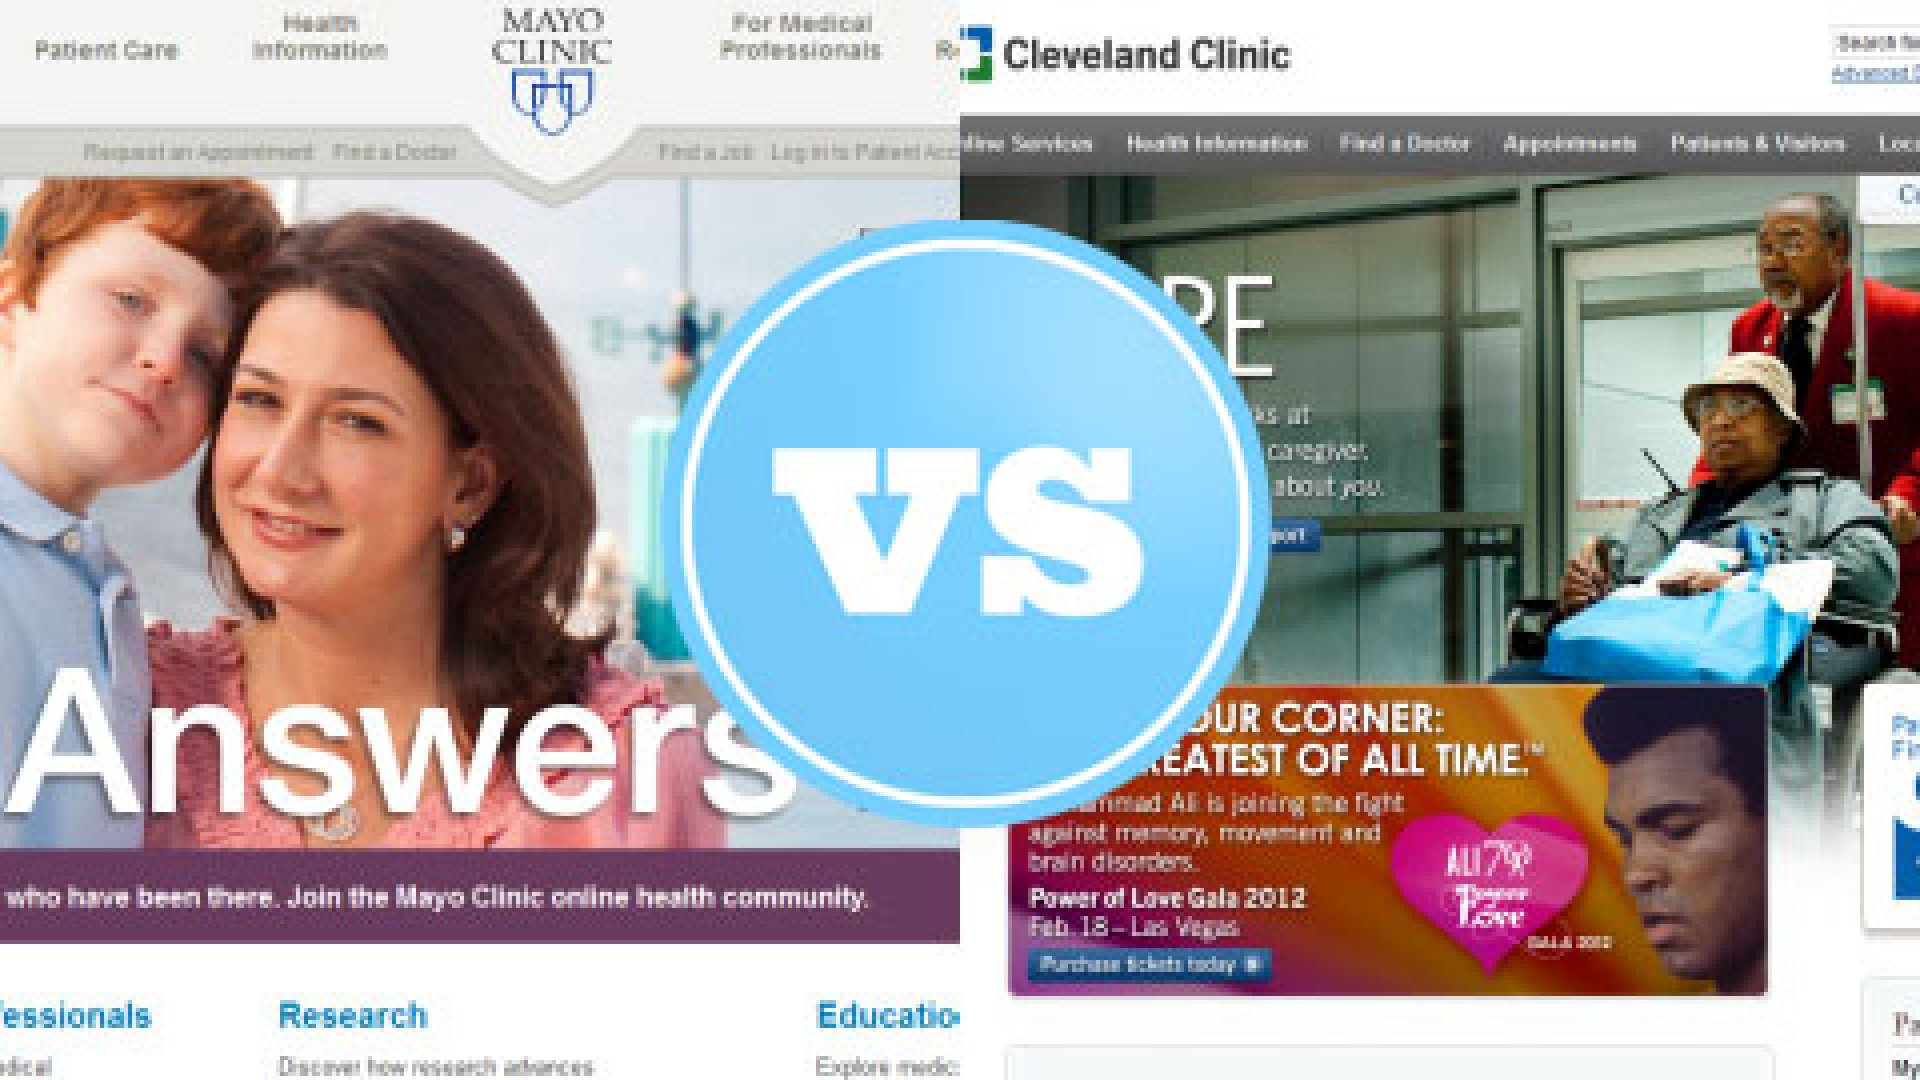 Website Smackdown: Mayo Clinic vs. Cleveland Clinic